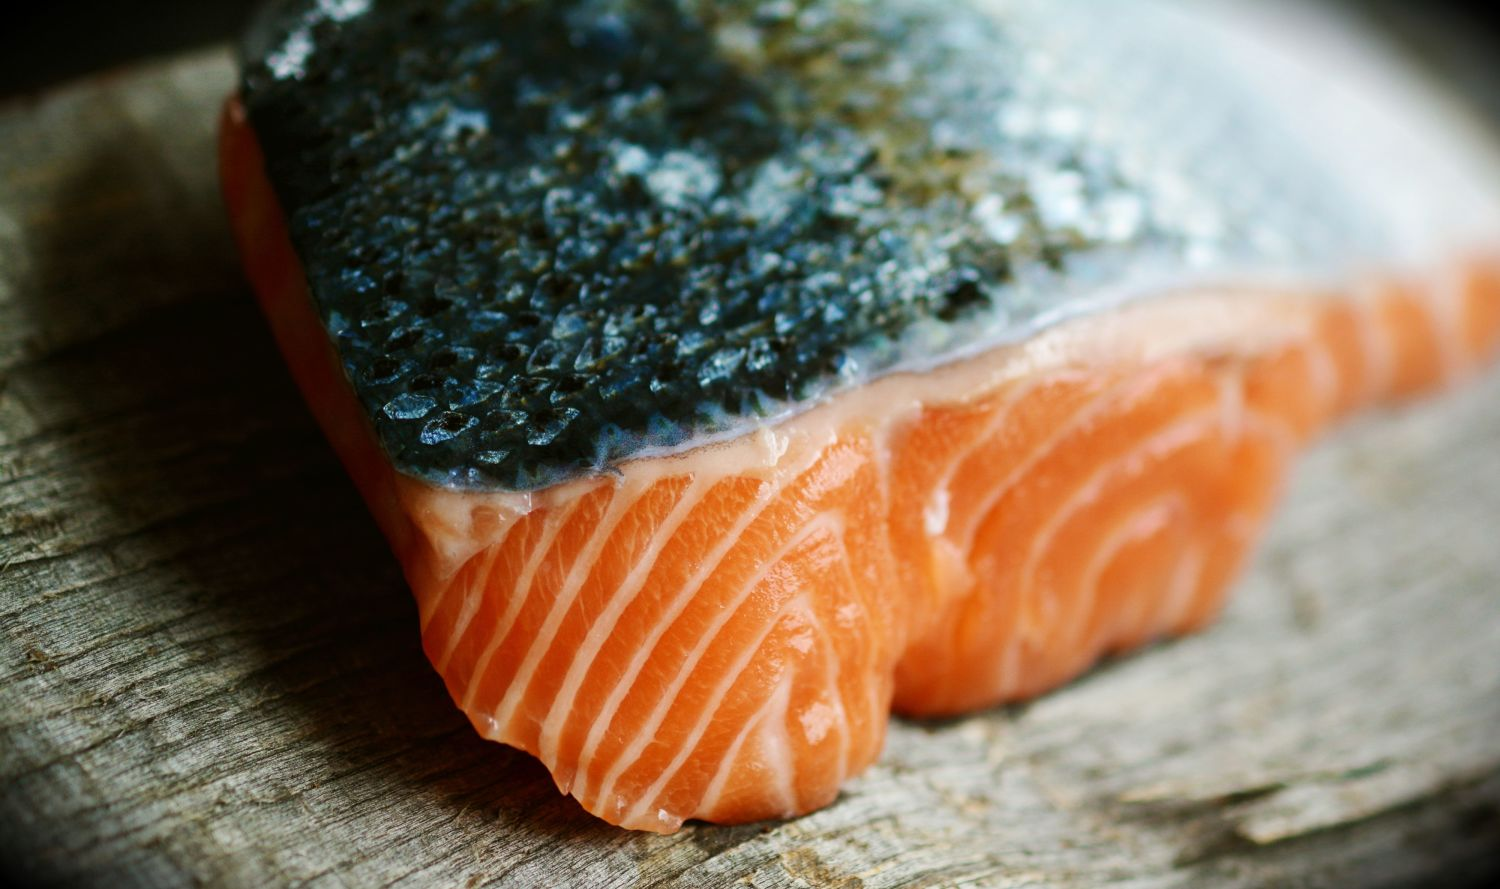 Salmon. Photo: Congerdesign for Pixabay